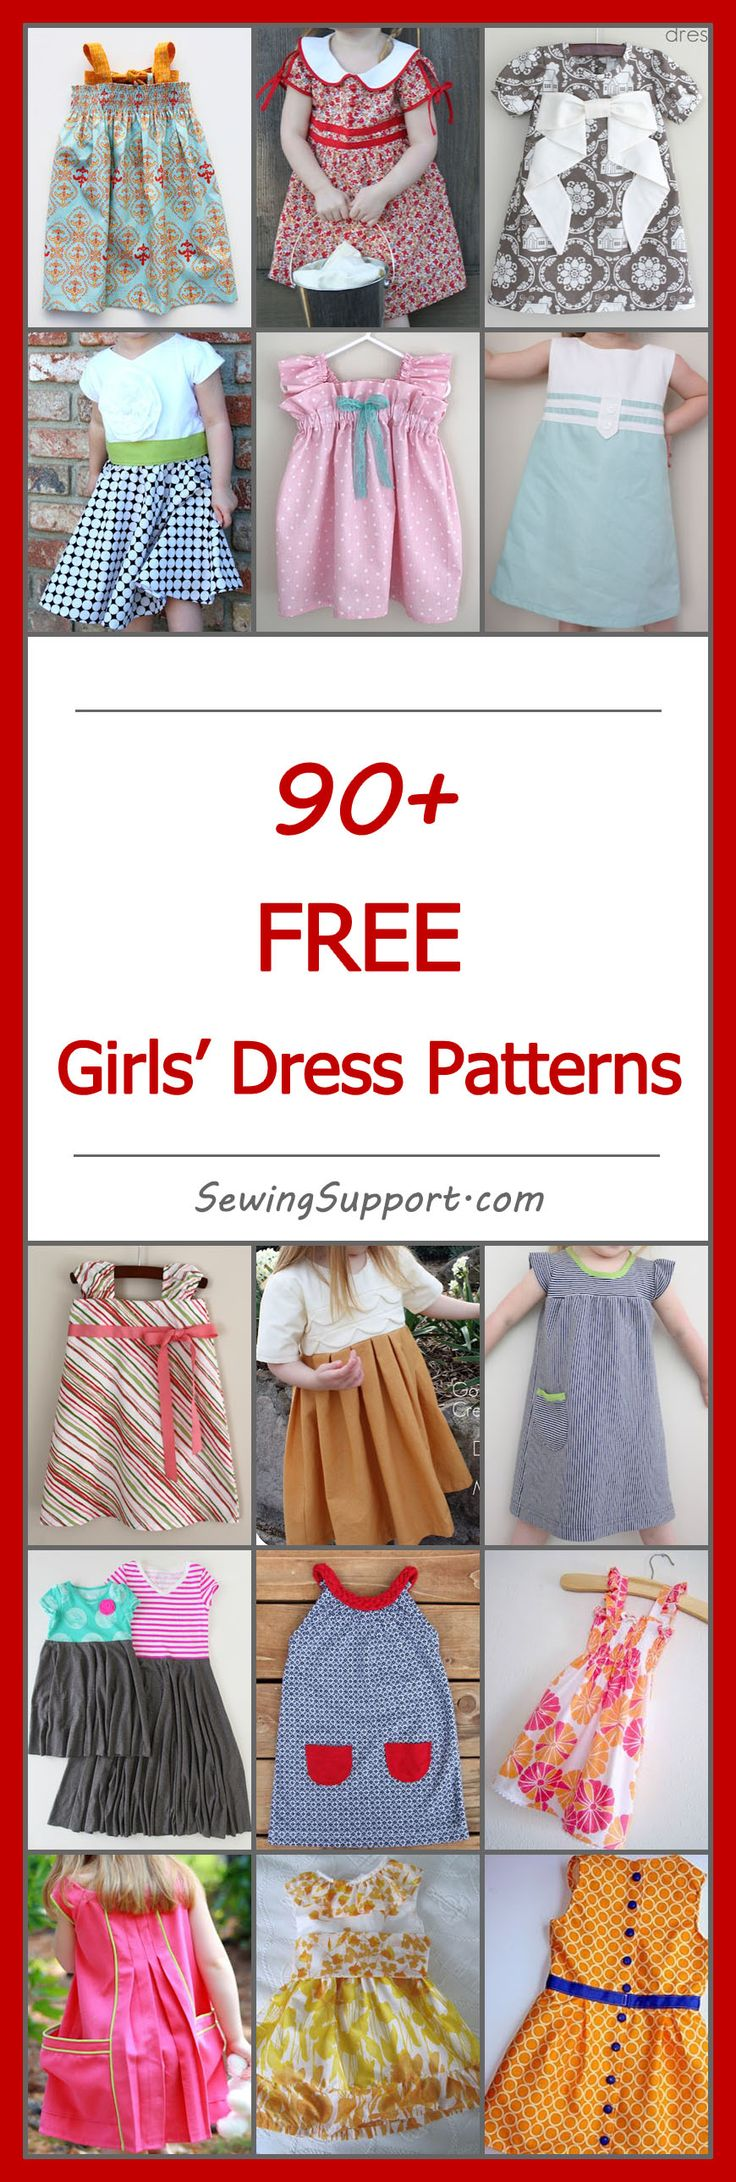 Lots of free dress patterns for girls.